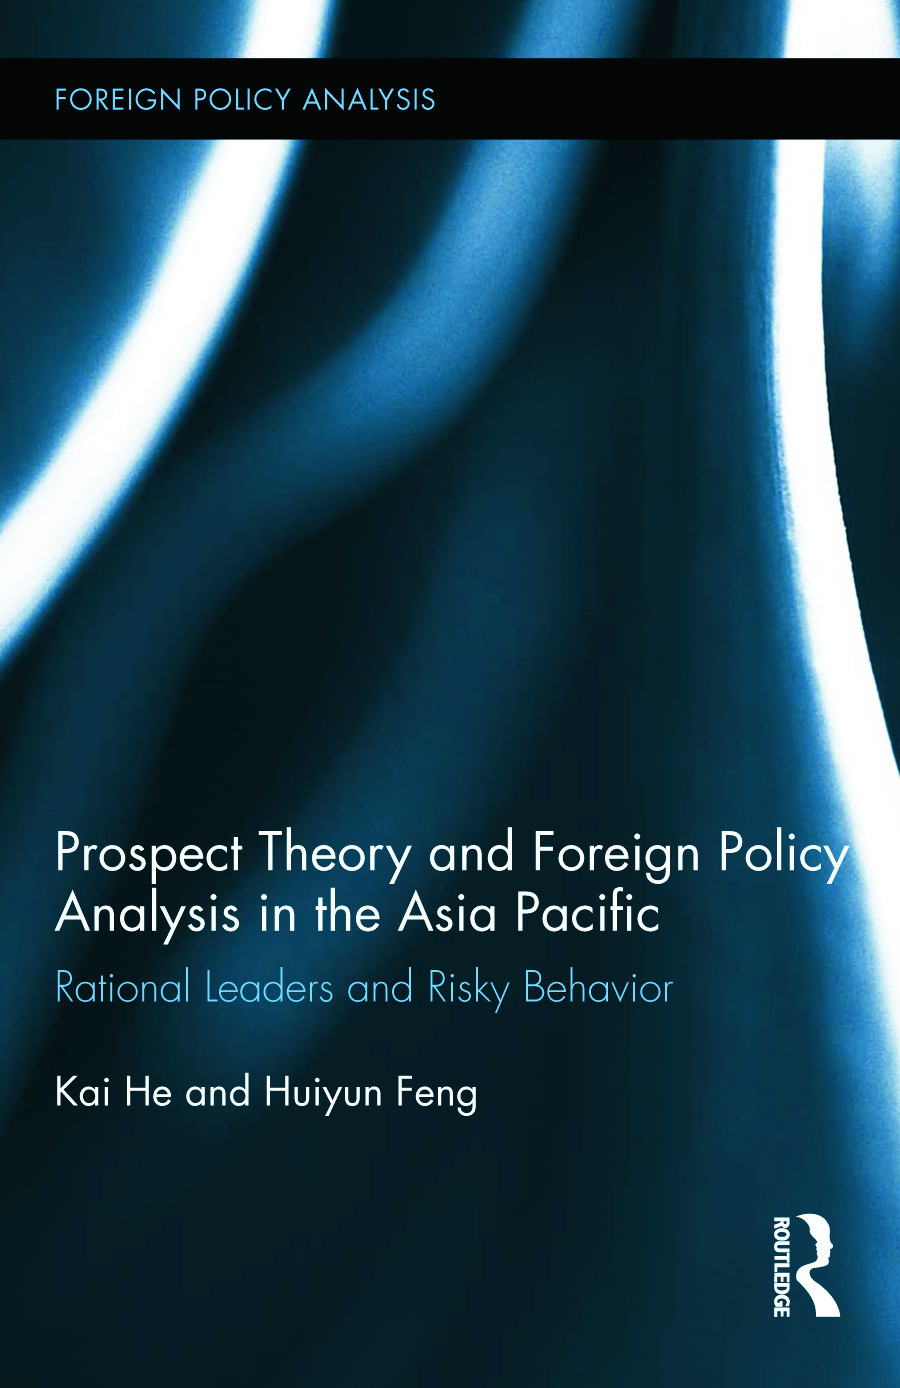 Prospect Theory and Foreign Policy Analysis in the Asia Pacific: Rational Leaders and Risky Behavior book cover